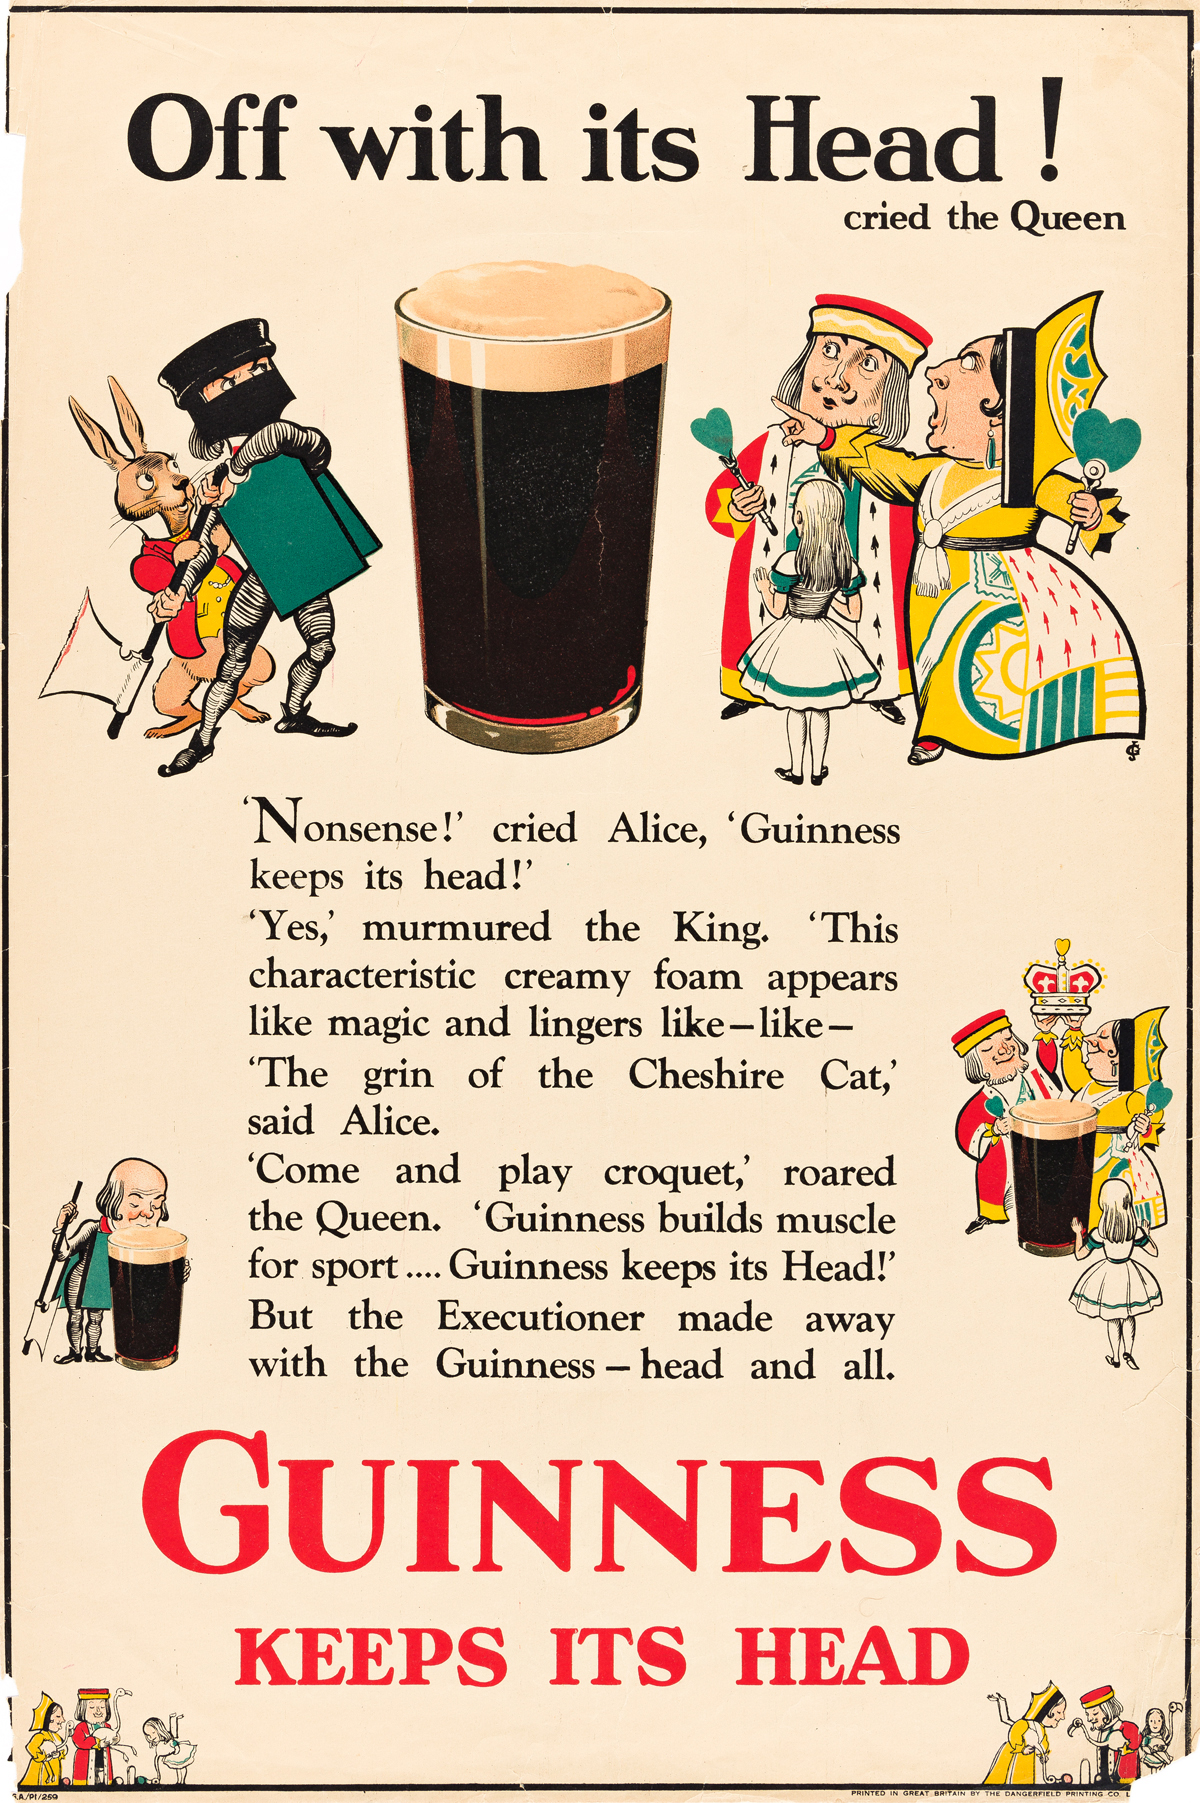 JOHN GILROY (1898-1985).  OFF WITH HIS HEAD! / GUINNESS KEEPS ITS HEAD. 1930. 30x20 inches, 76x50 cm. The Dangerfield Printing Company,